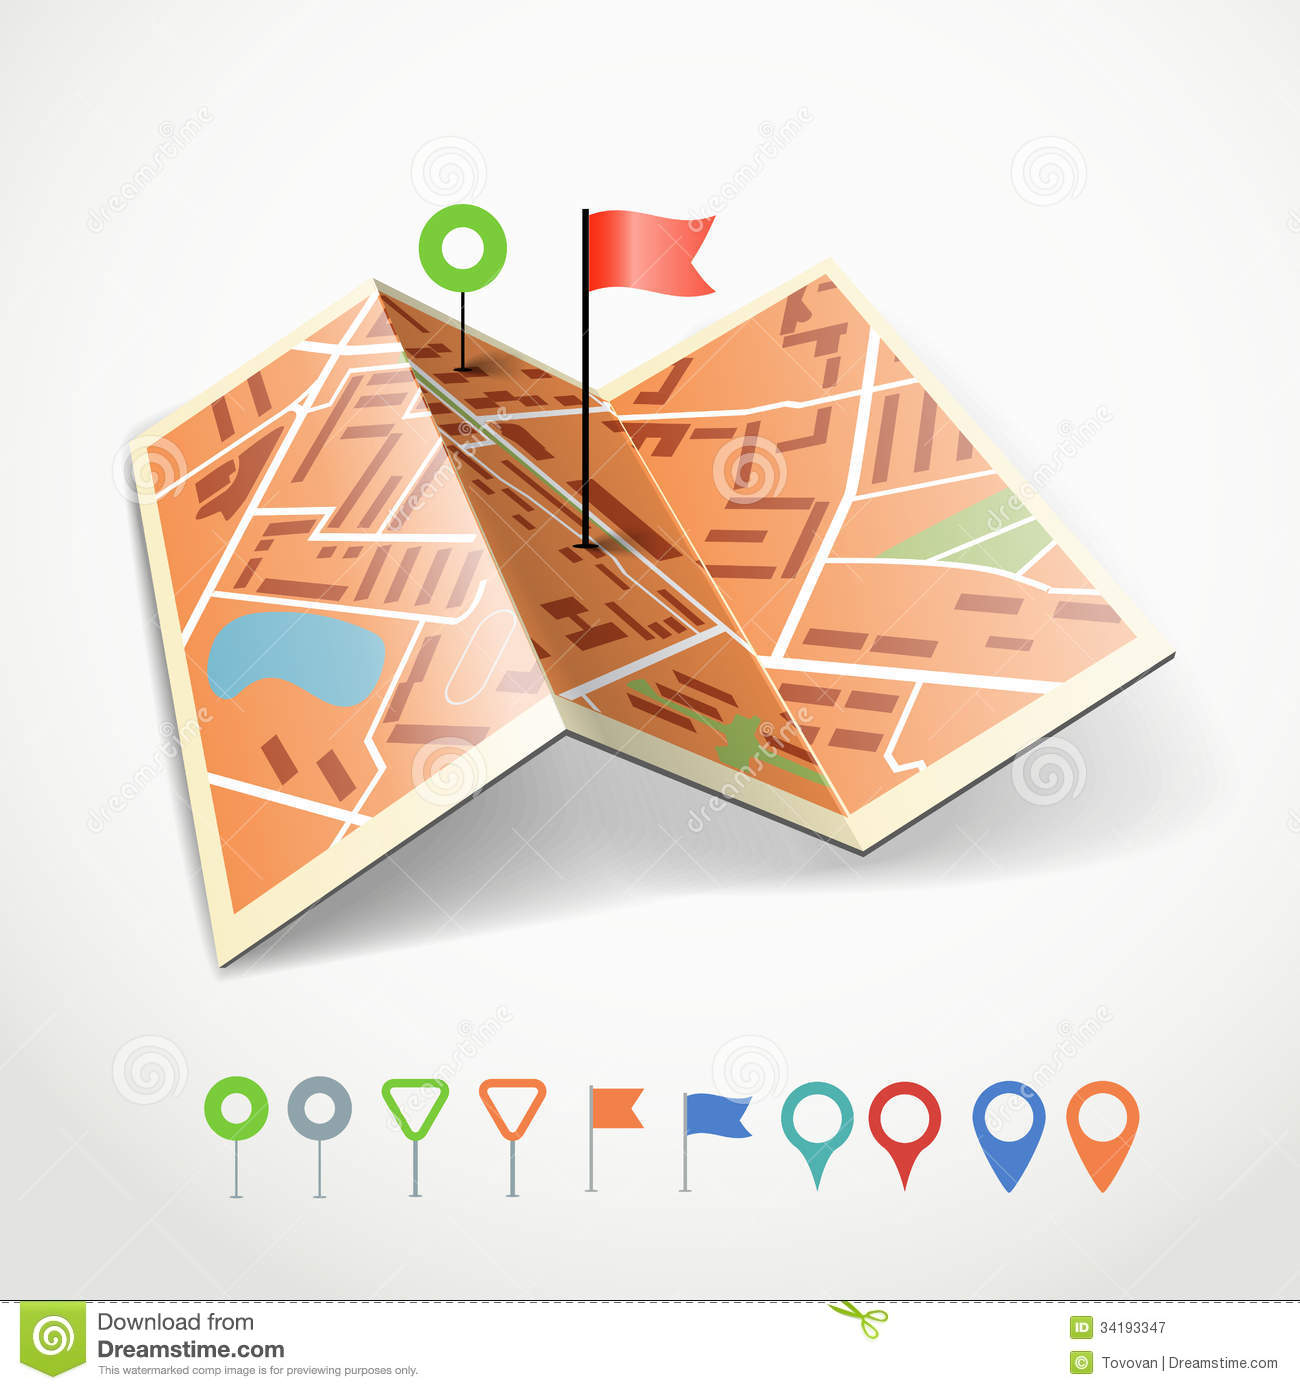 Folded road map clipart svg free download Folded City Map Stock Images - Image: 28091204 svg free download